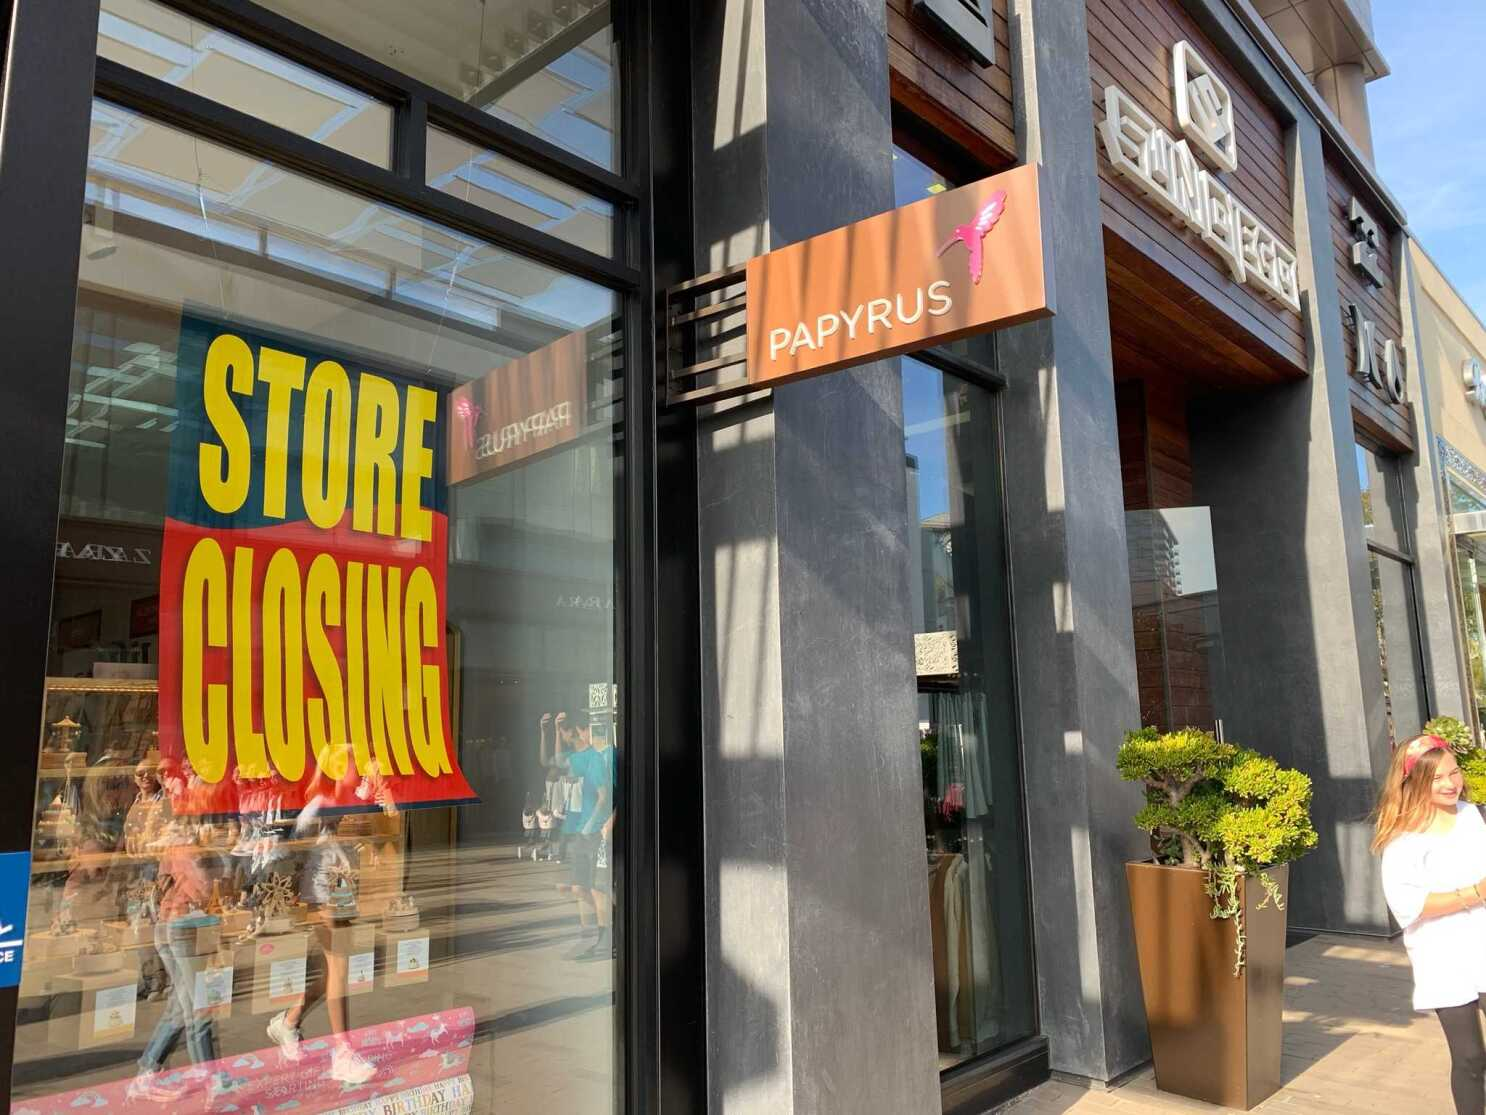 Papyrus, a staple of malls everywhere, is going bankrupt — closing 3 stores in San Diego